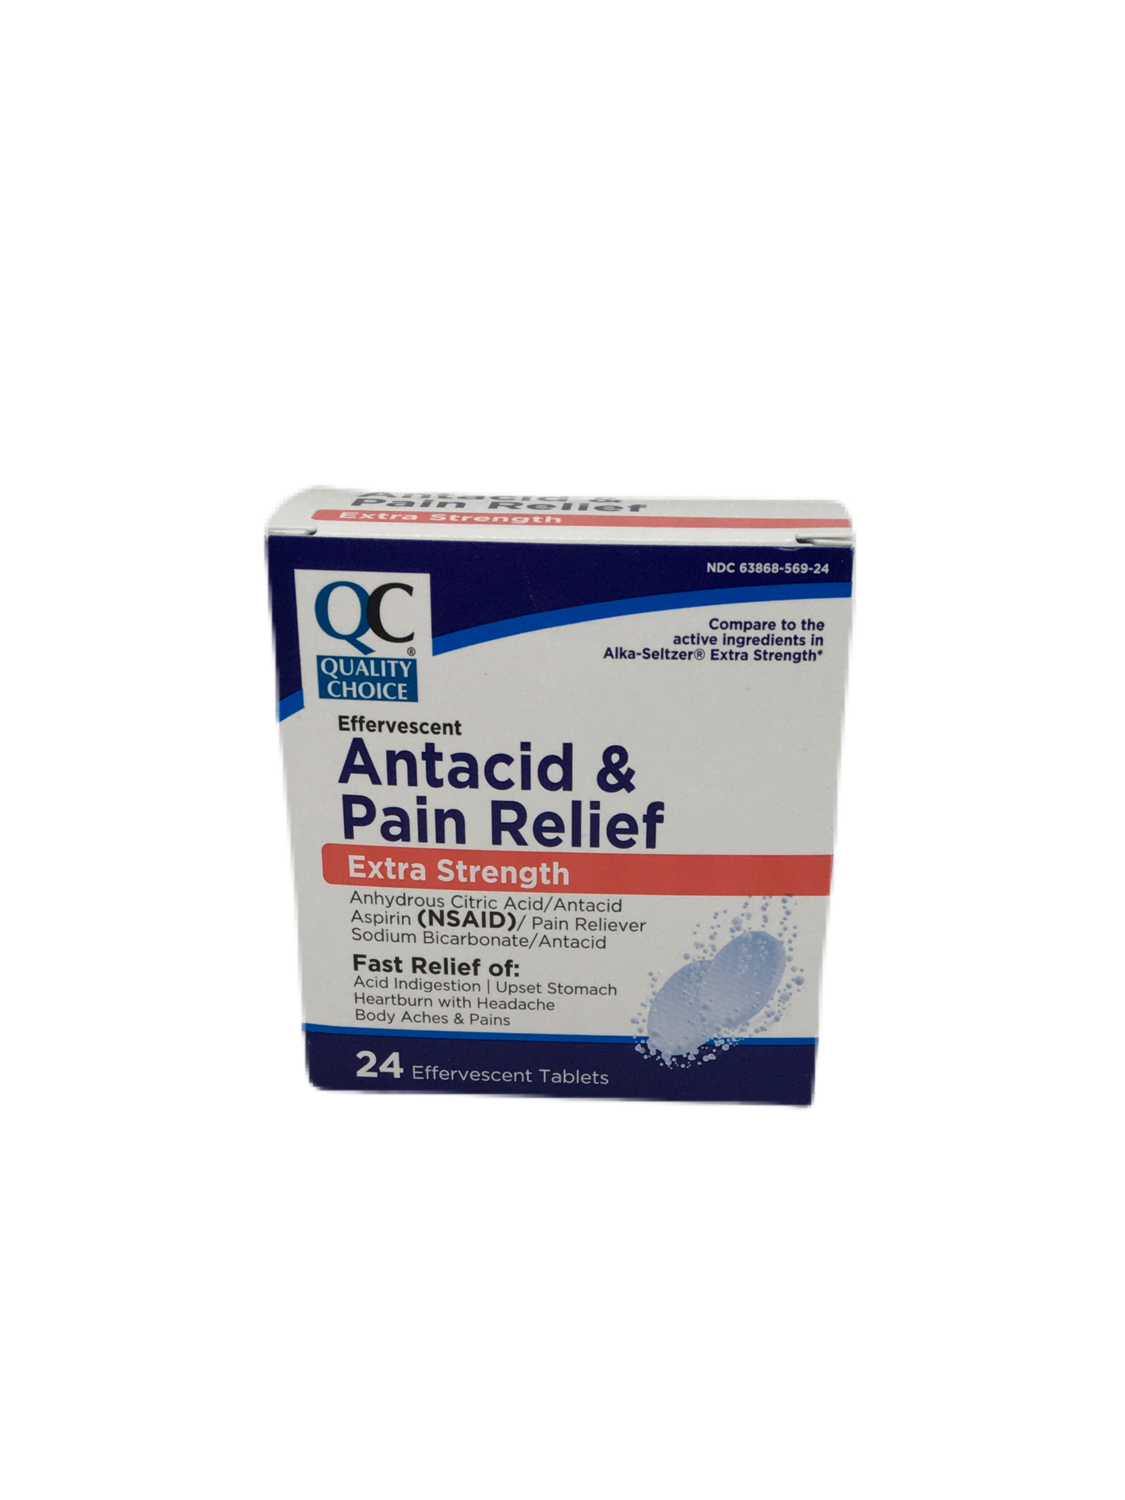 QC Antacid & Pain Relief Extra Strenght